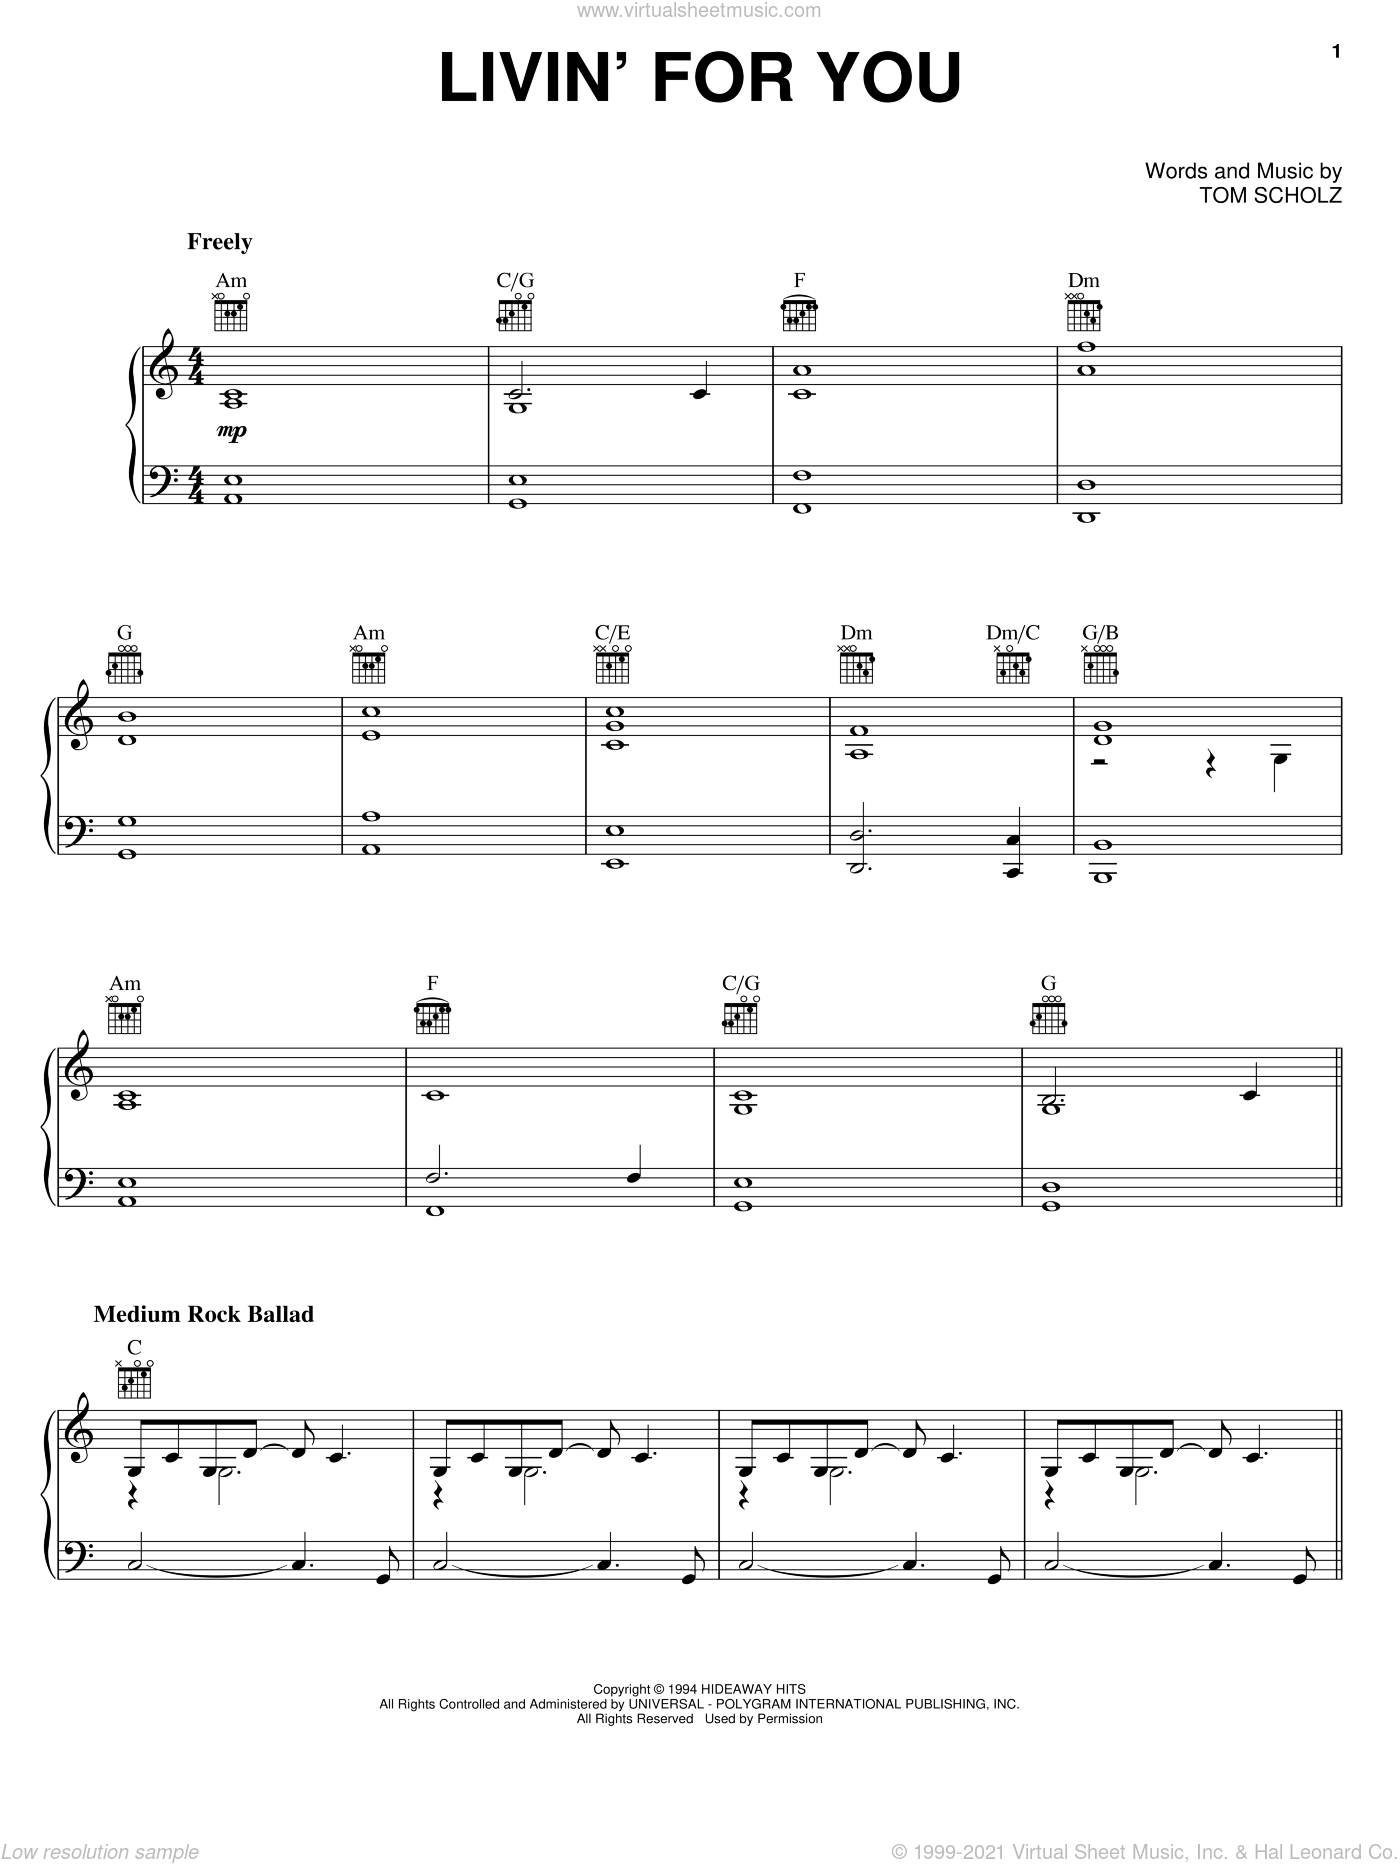 Livin' For You sheet music for voice, piano or guitar by Boston and Tom Scholz, intermediate